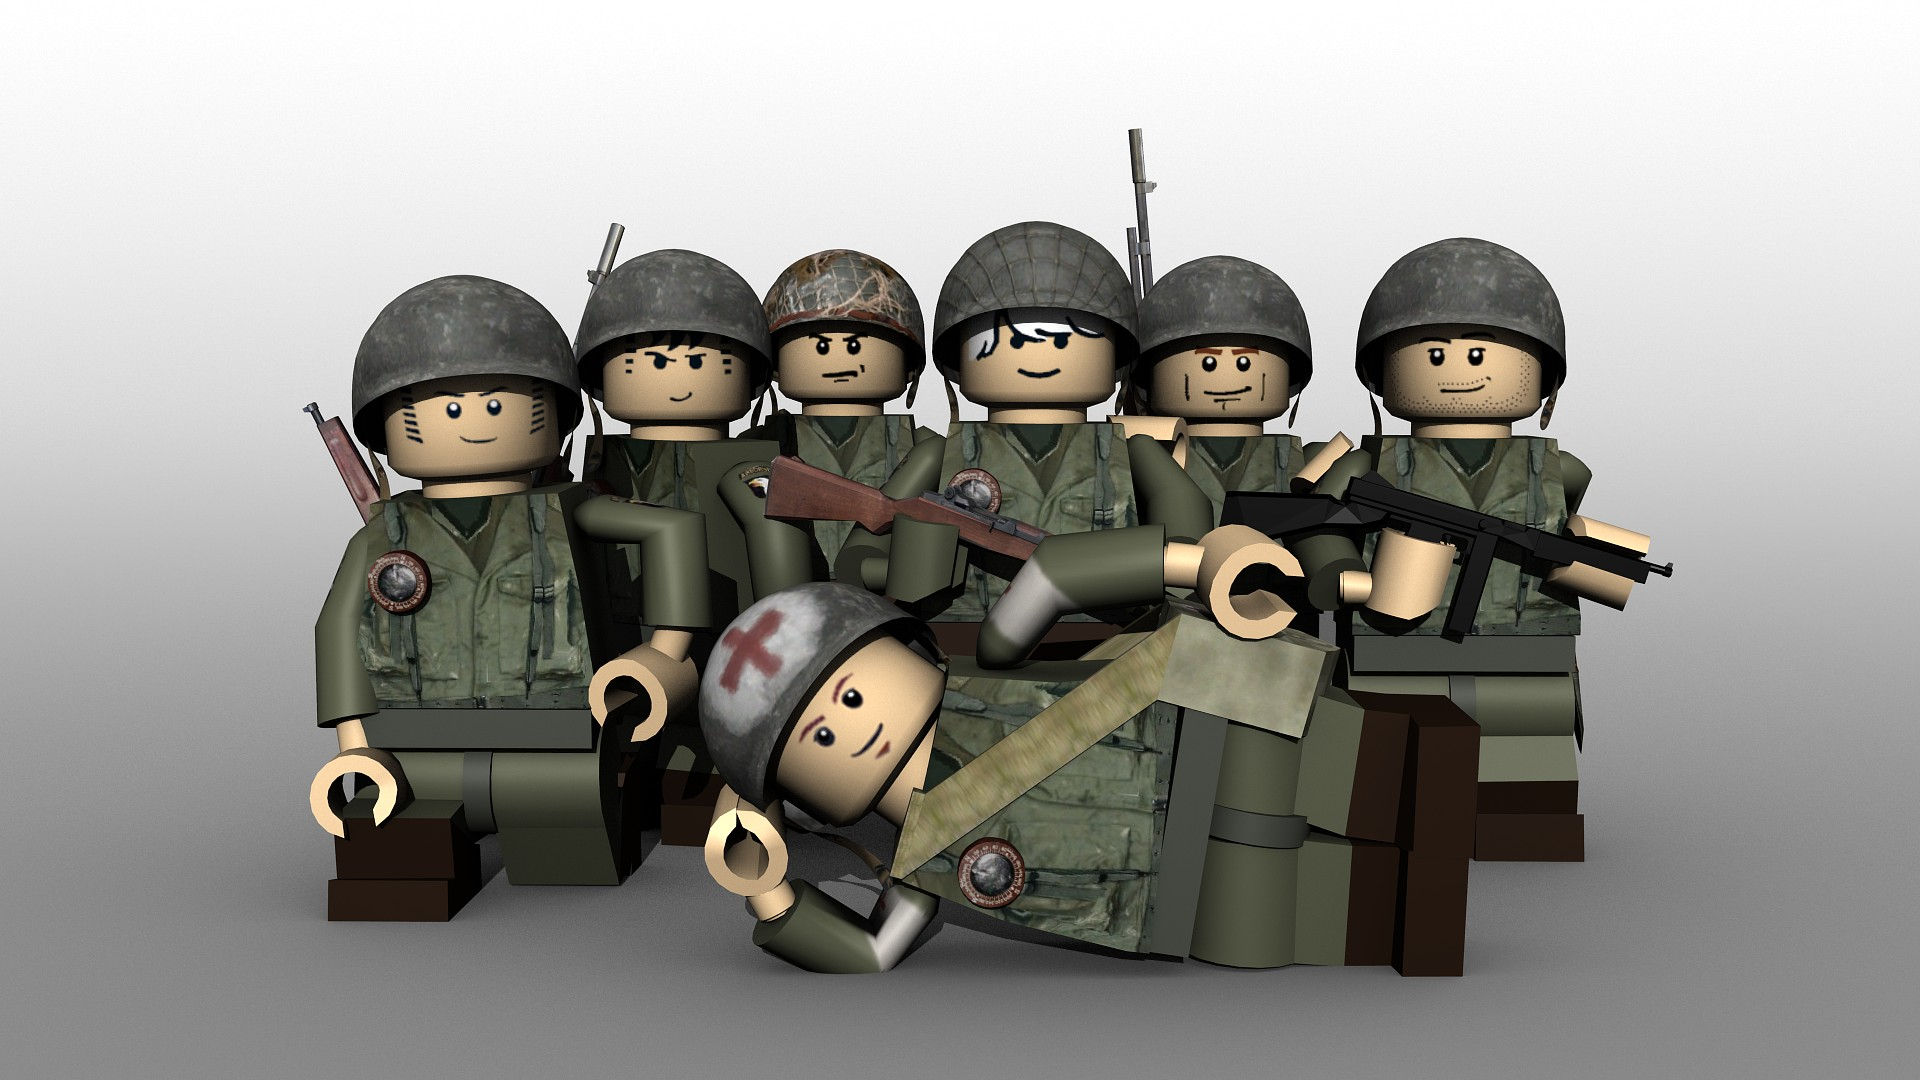 LEGO WW2 American Soldiers